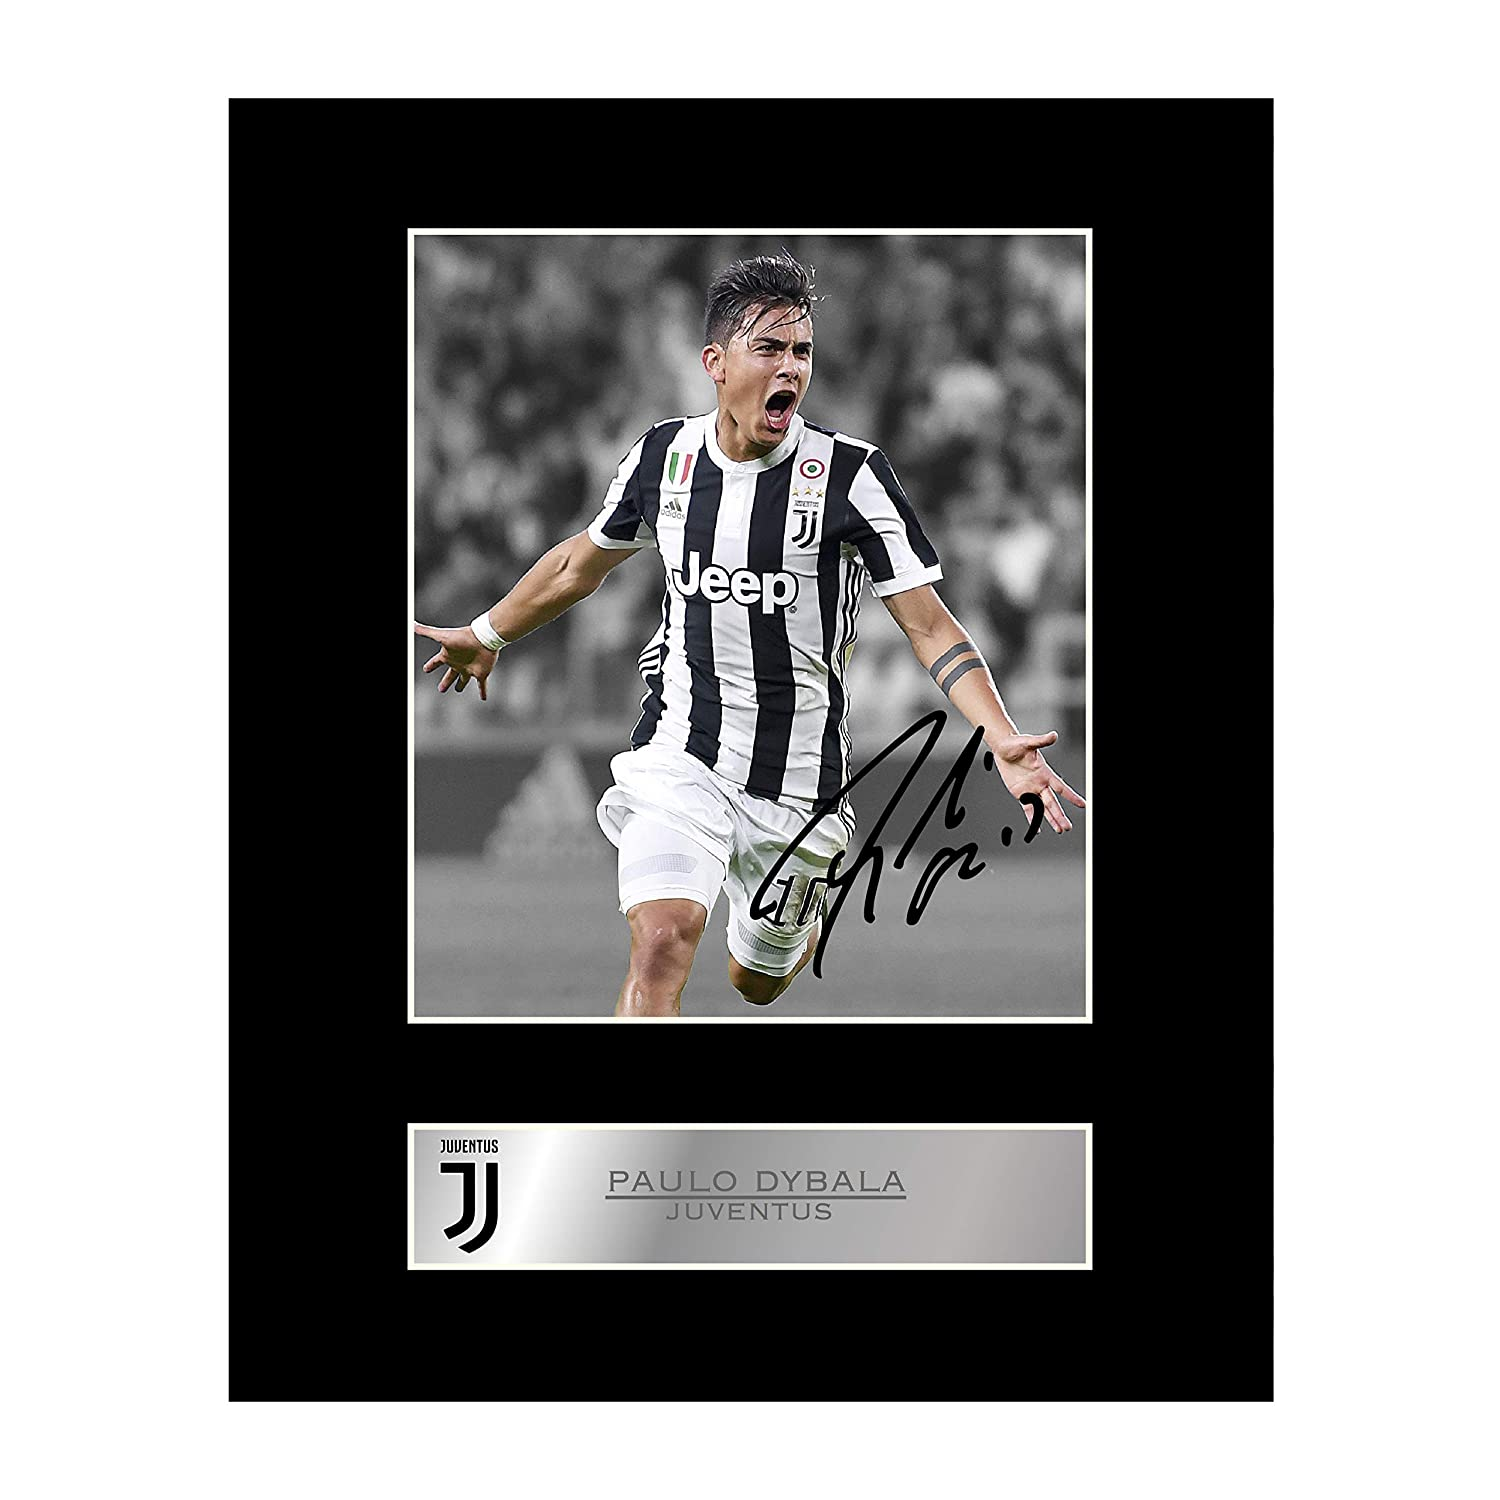 94bd743c536 Paulo Dybala Signed Mounted Photo Display Juventus FC  1 Autographed Gift  Picture Print  Amazon.co.uk  Kitchen   Home